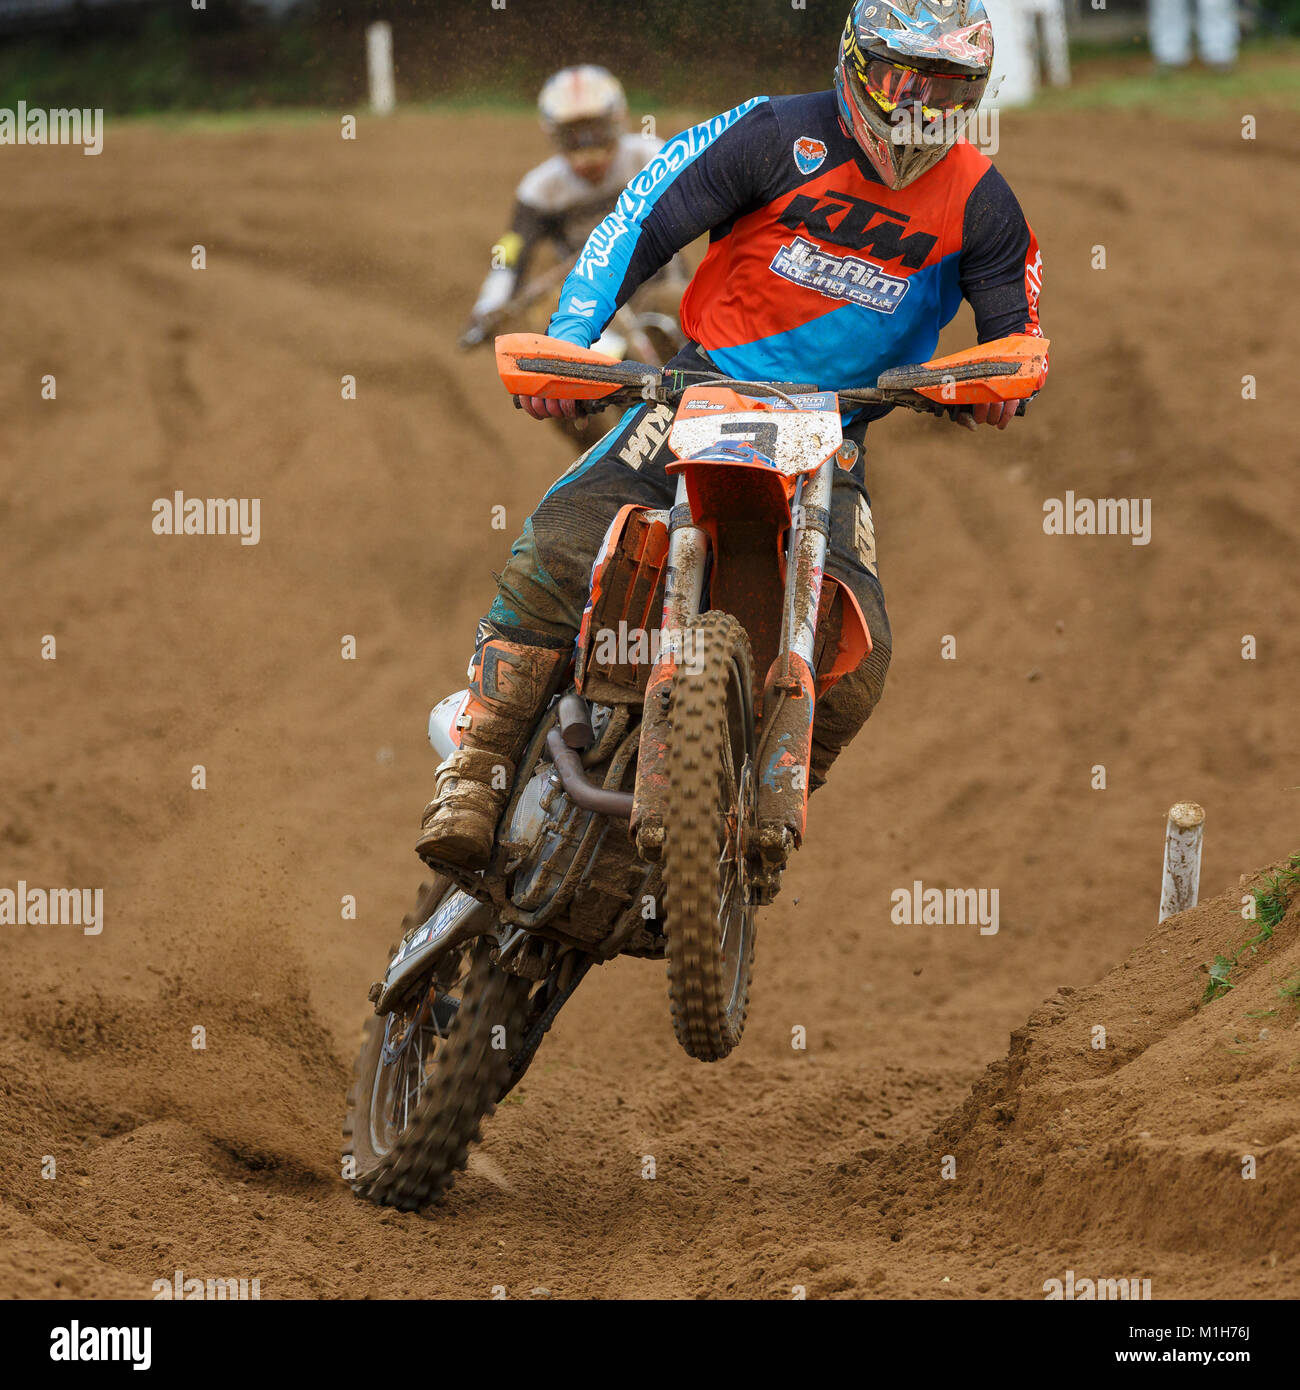 7c40eb5c8d6bb Jason Morland on the Jim Aim Racing / The Depot KTM 350 at the NGR &